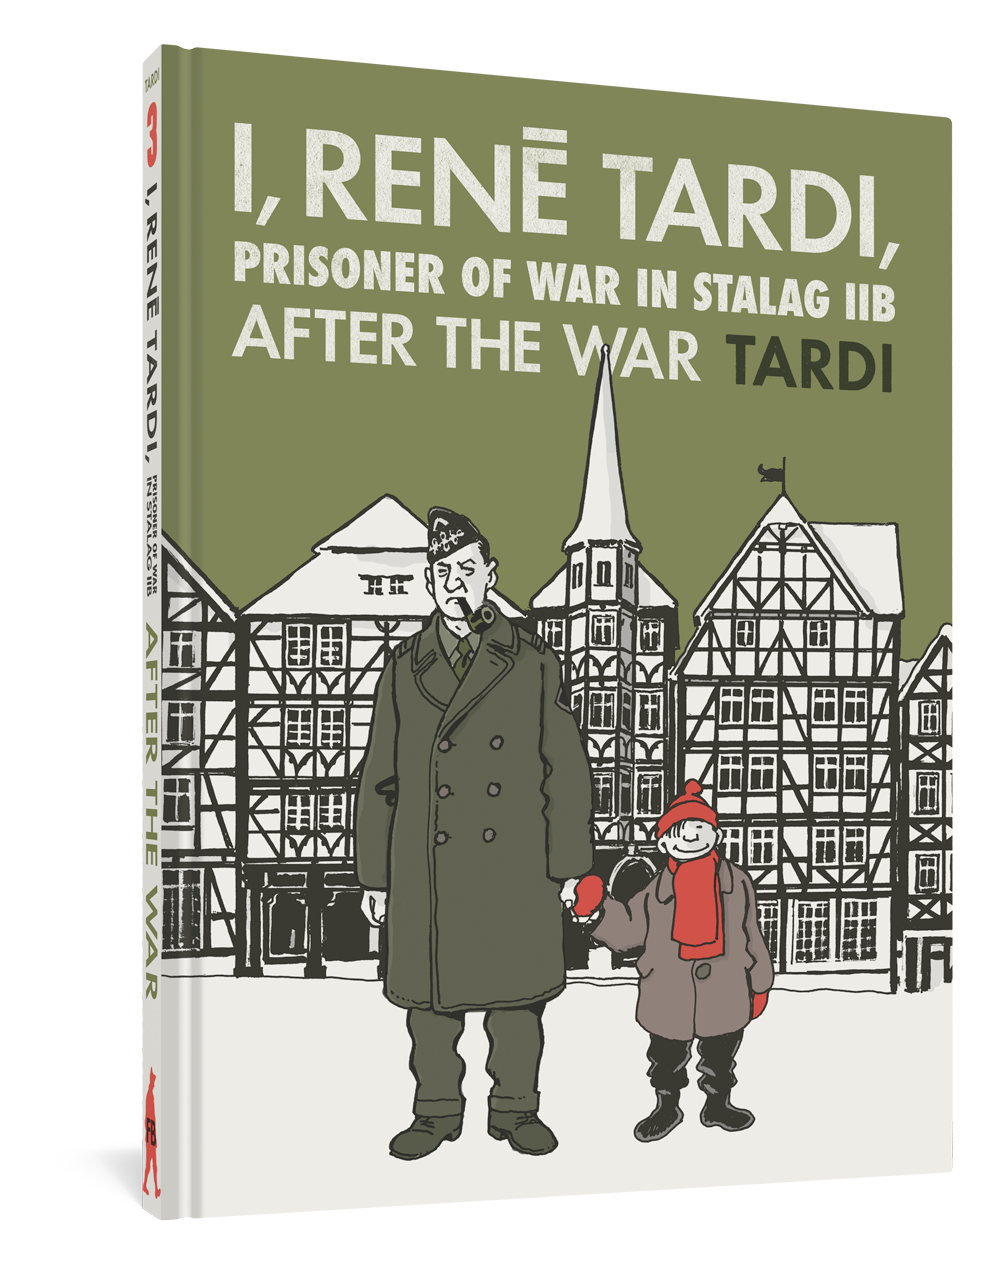 I, Rene Tardi, Prisoner of War at Stalag IIB Vol. 3: After the War